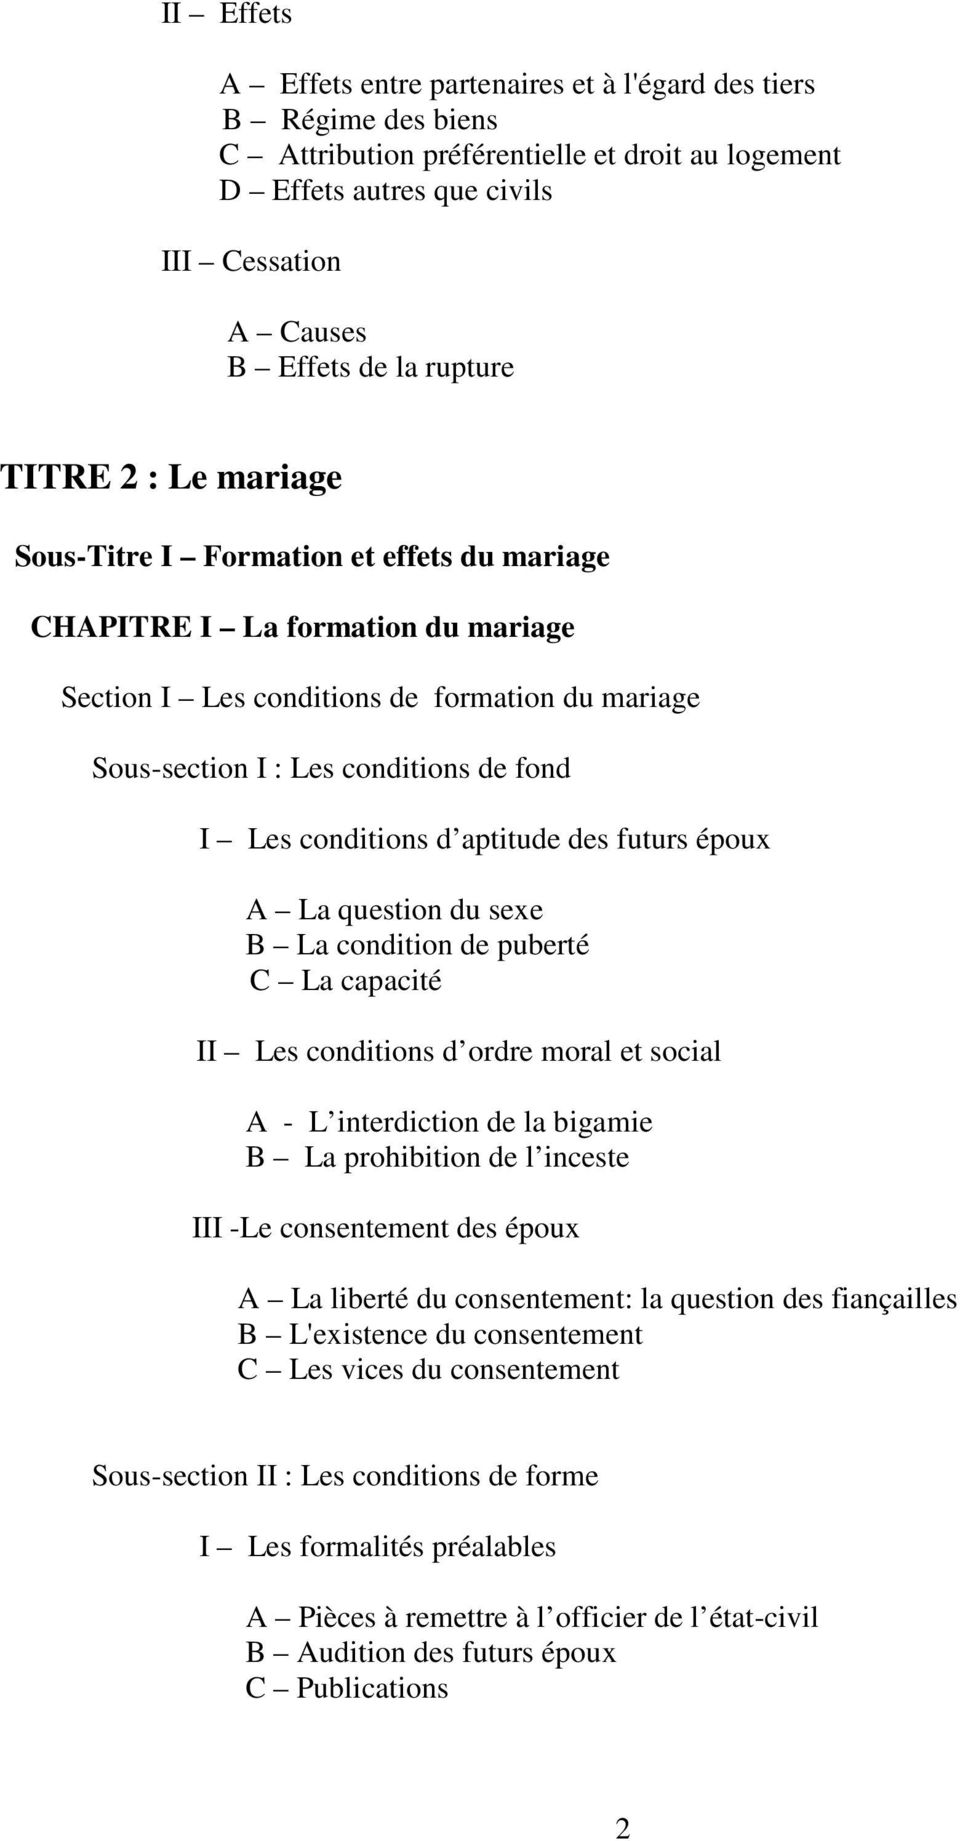 Les conditions d aptitude des futurs époux A La question du sexe B La condition de puberté C La capacité II Les conditions d ordre moral et social A - L interdiction de la bigamie B La prohibition de